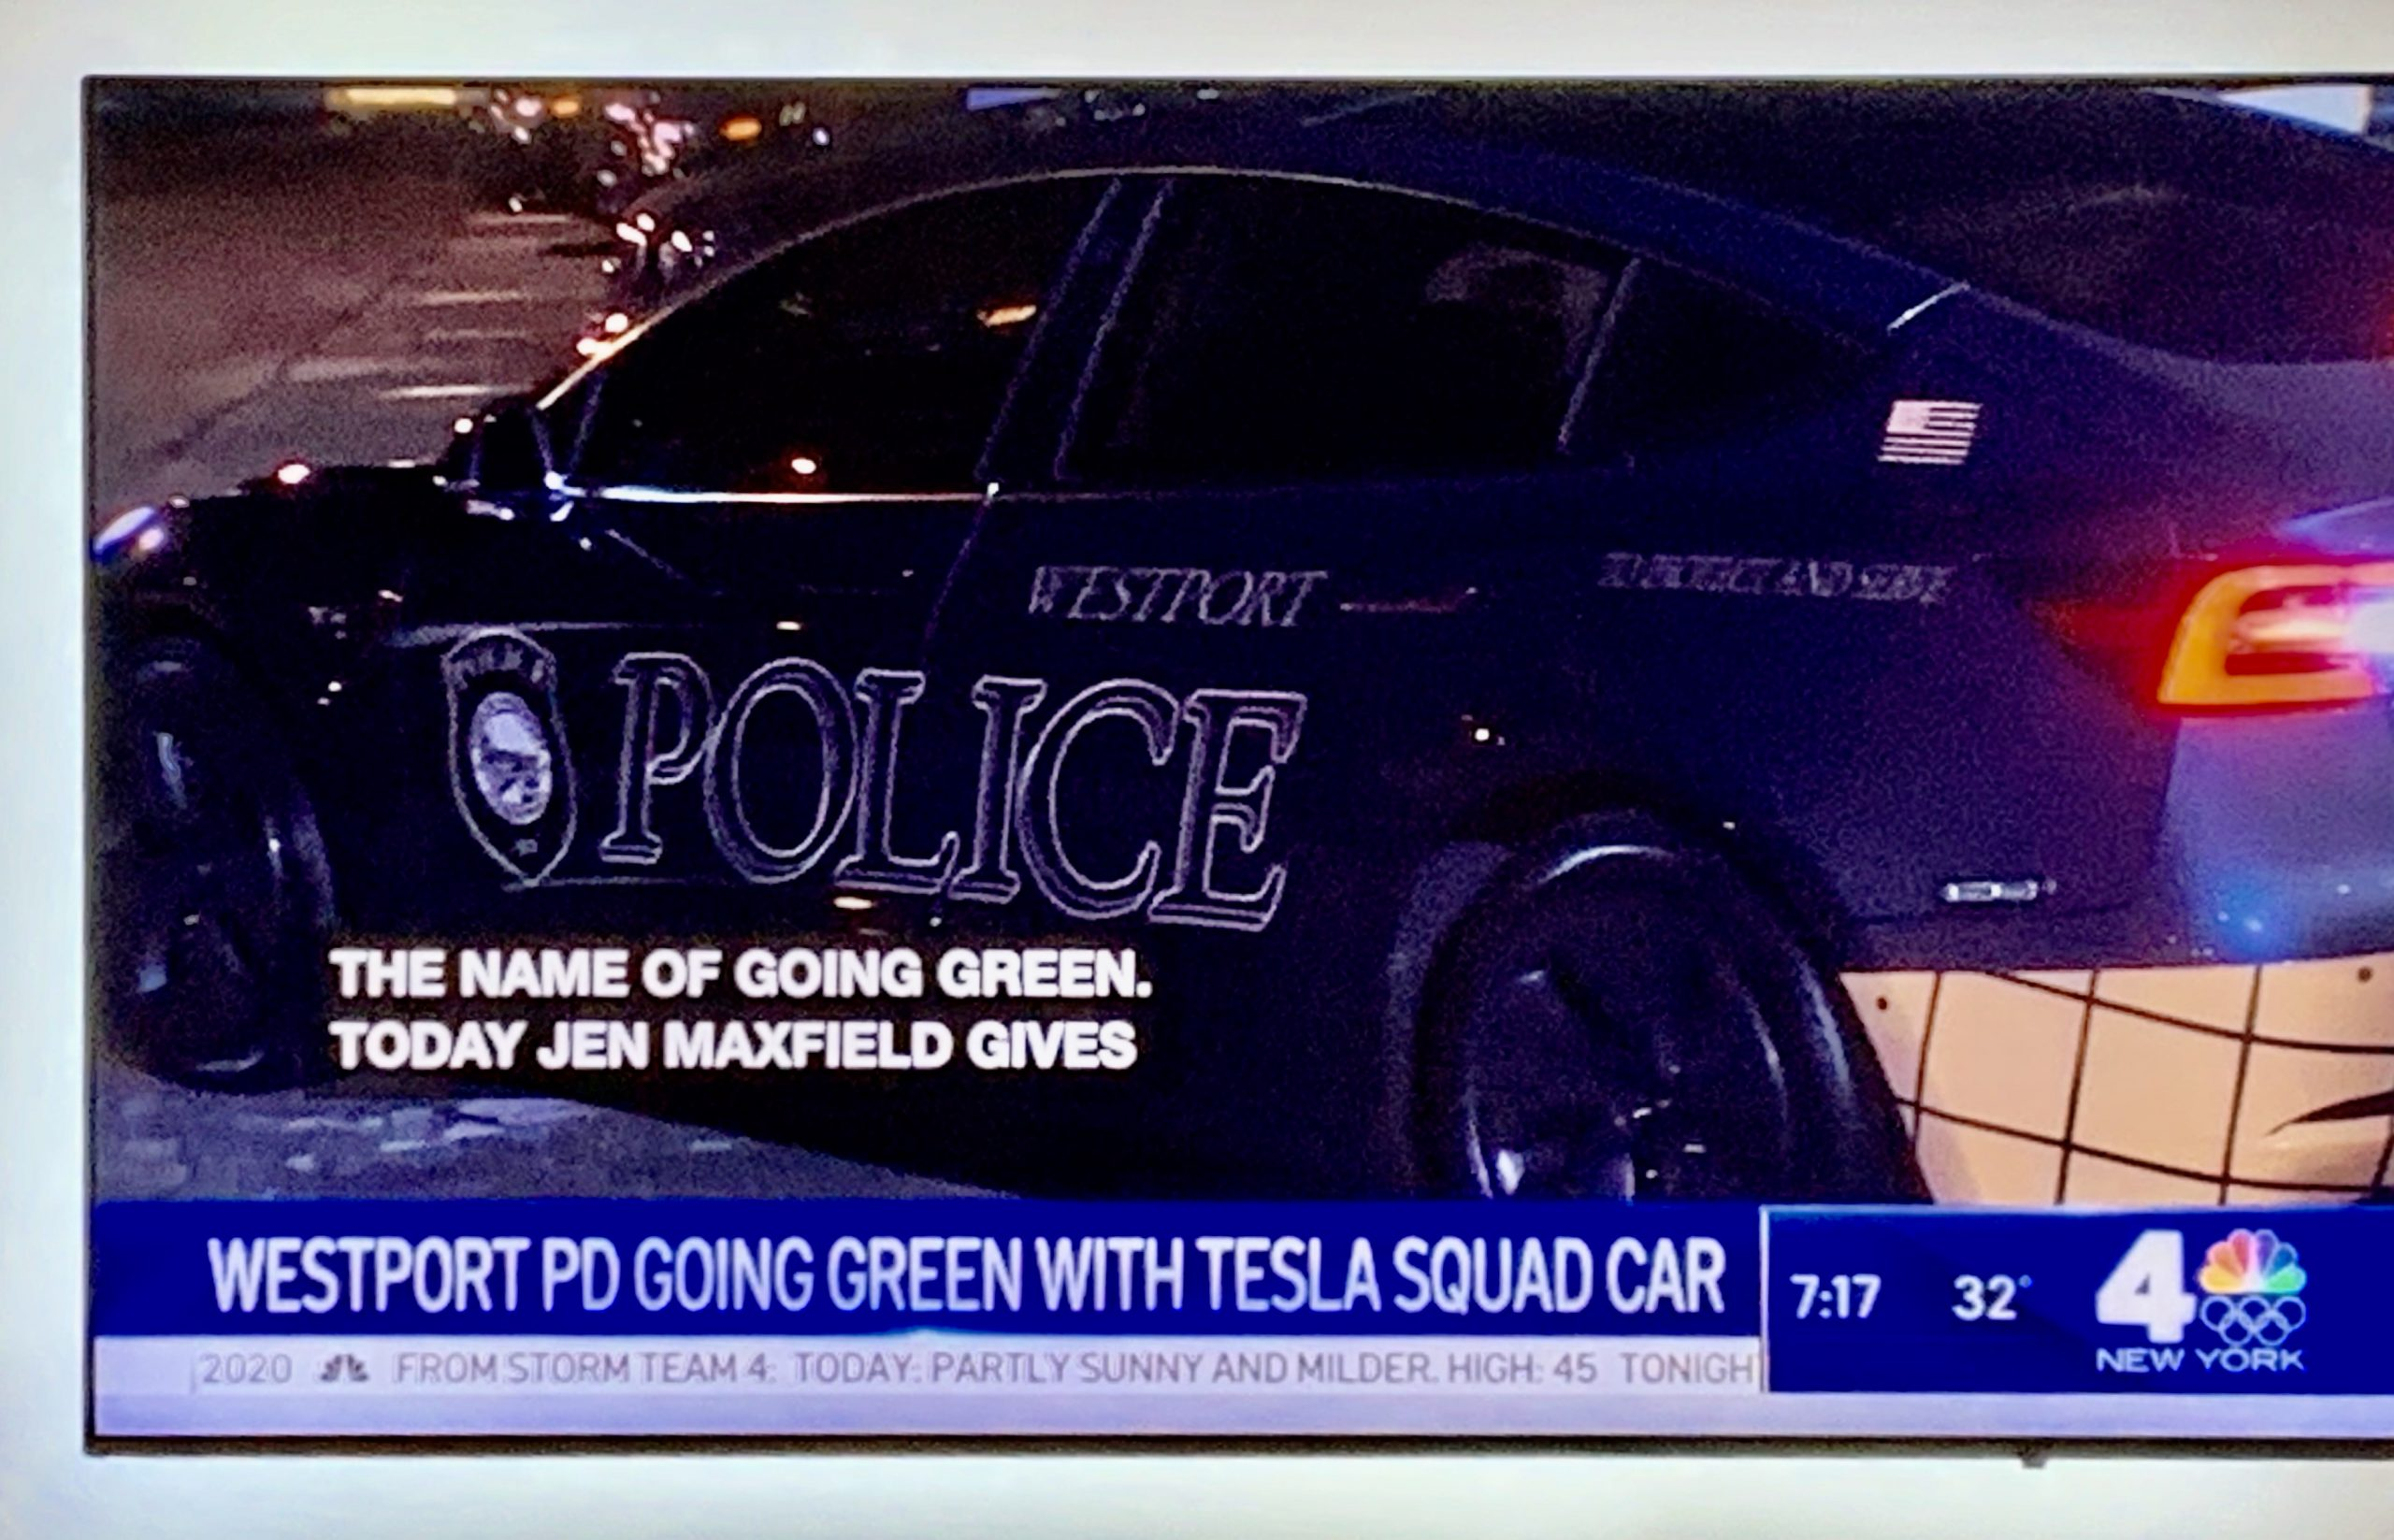 WNBC News Covering the Westport Police Department Tesla Model 3 Police Vehicle